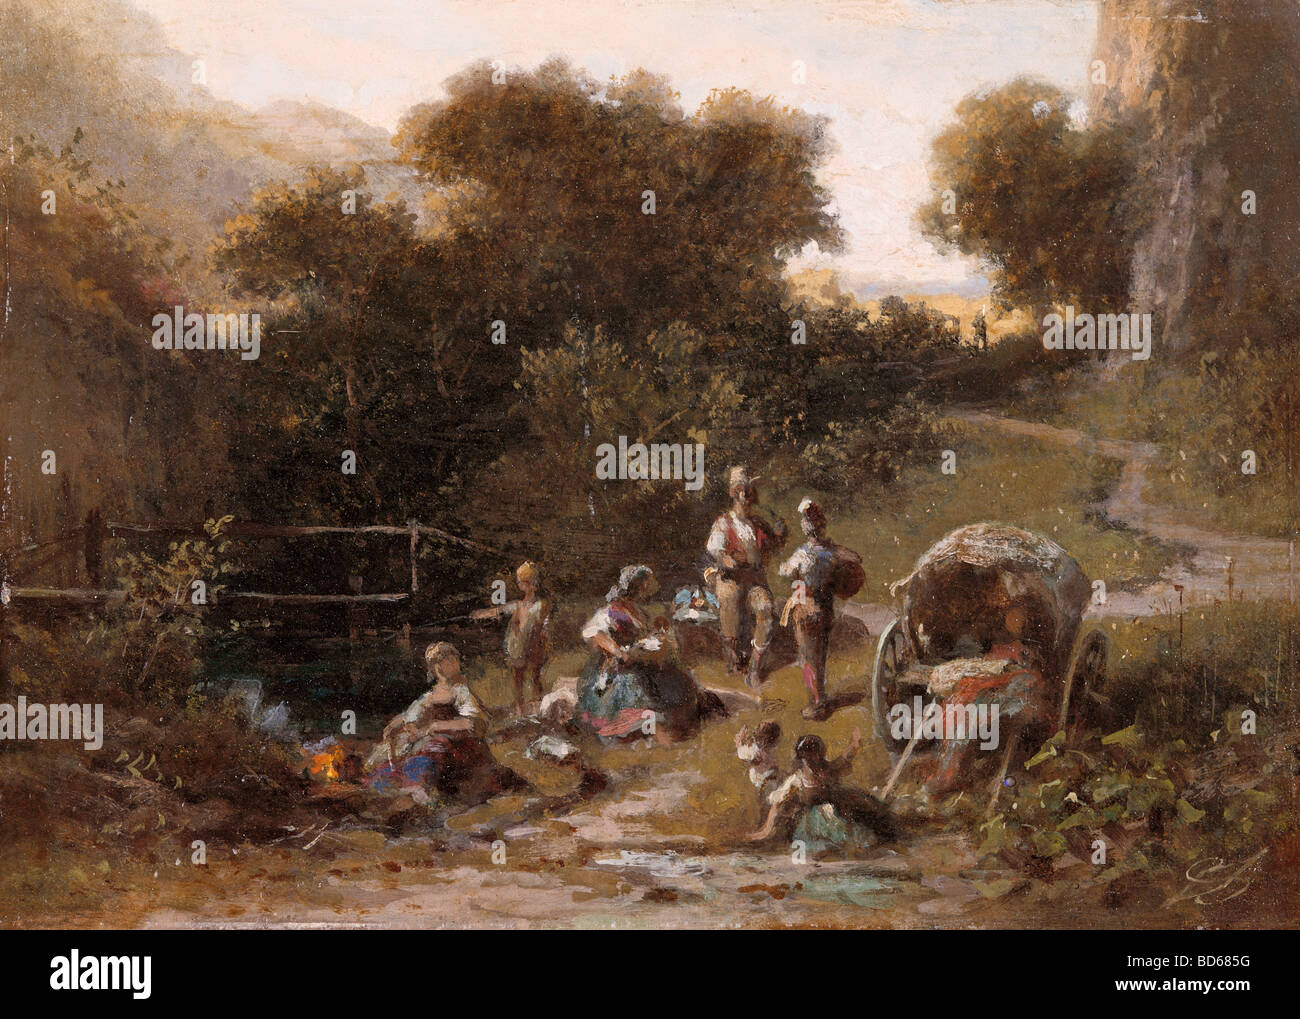 "fine arts, Spitzweg, Carl (1808 - 1885), painting ""Zigeunerlager"" (Gipsy's Camp), oil on cardboard, private collection, Stock Photo"